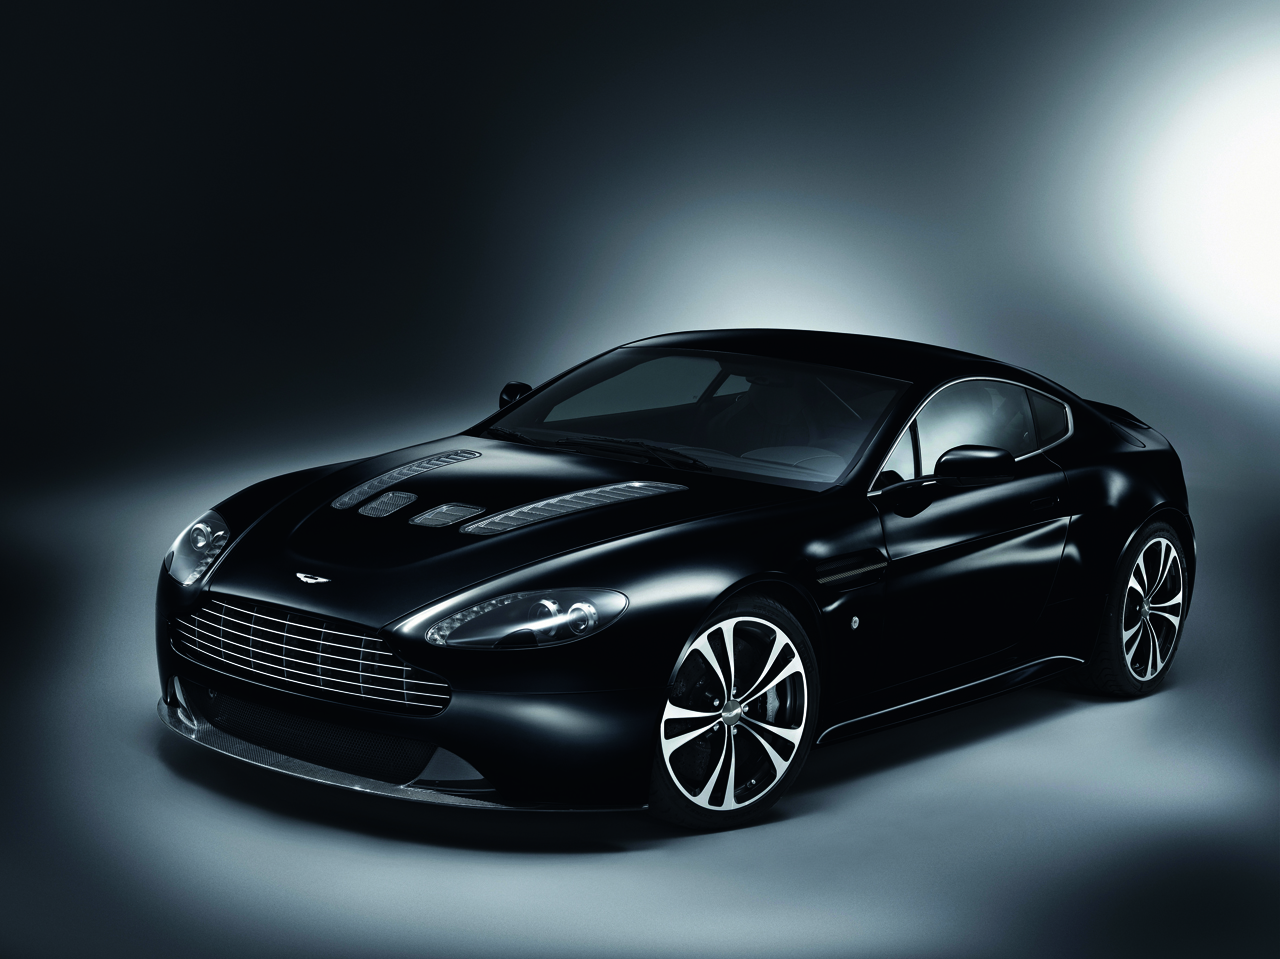 Aston Martin Carbon Black Dbs And V12 Vantage Photo Gallery Autoblog